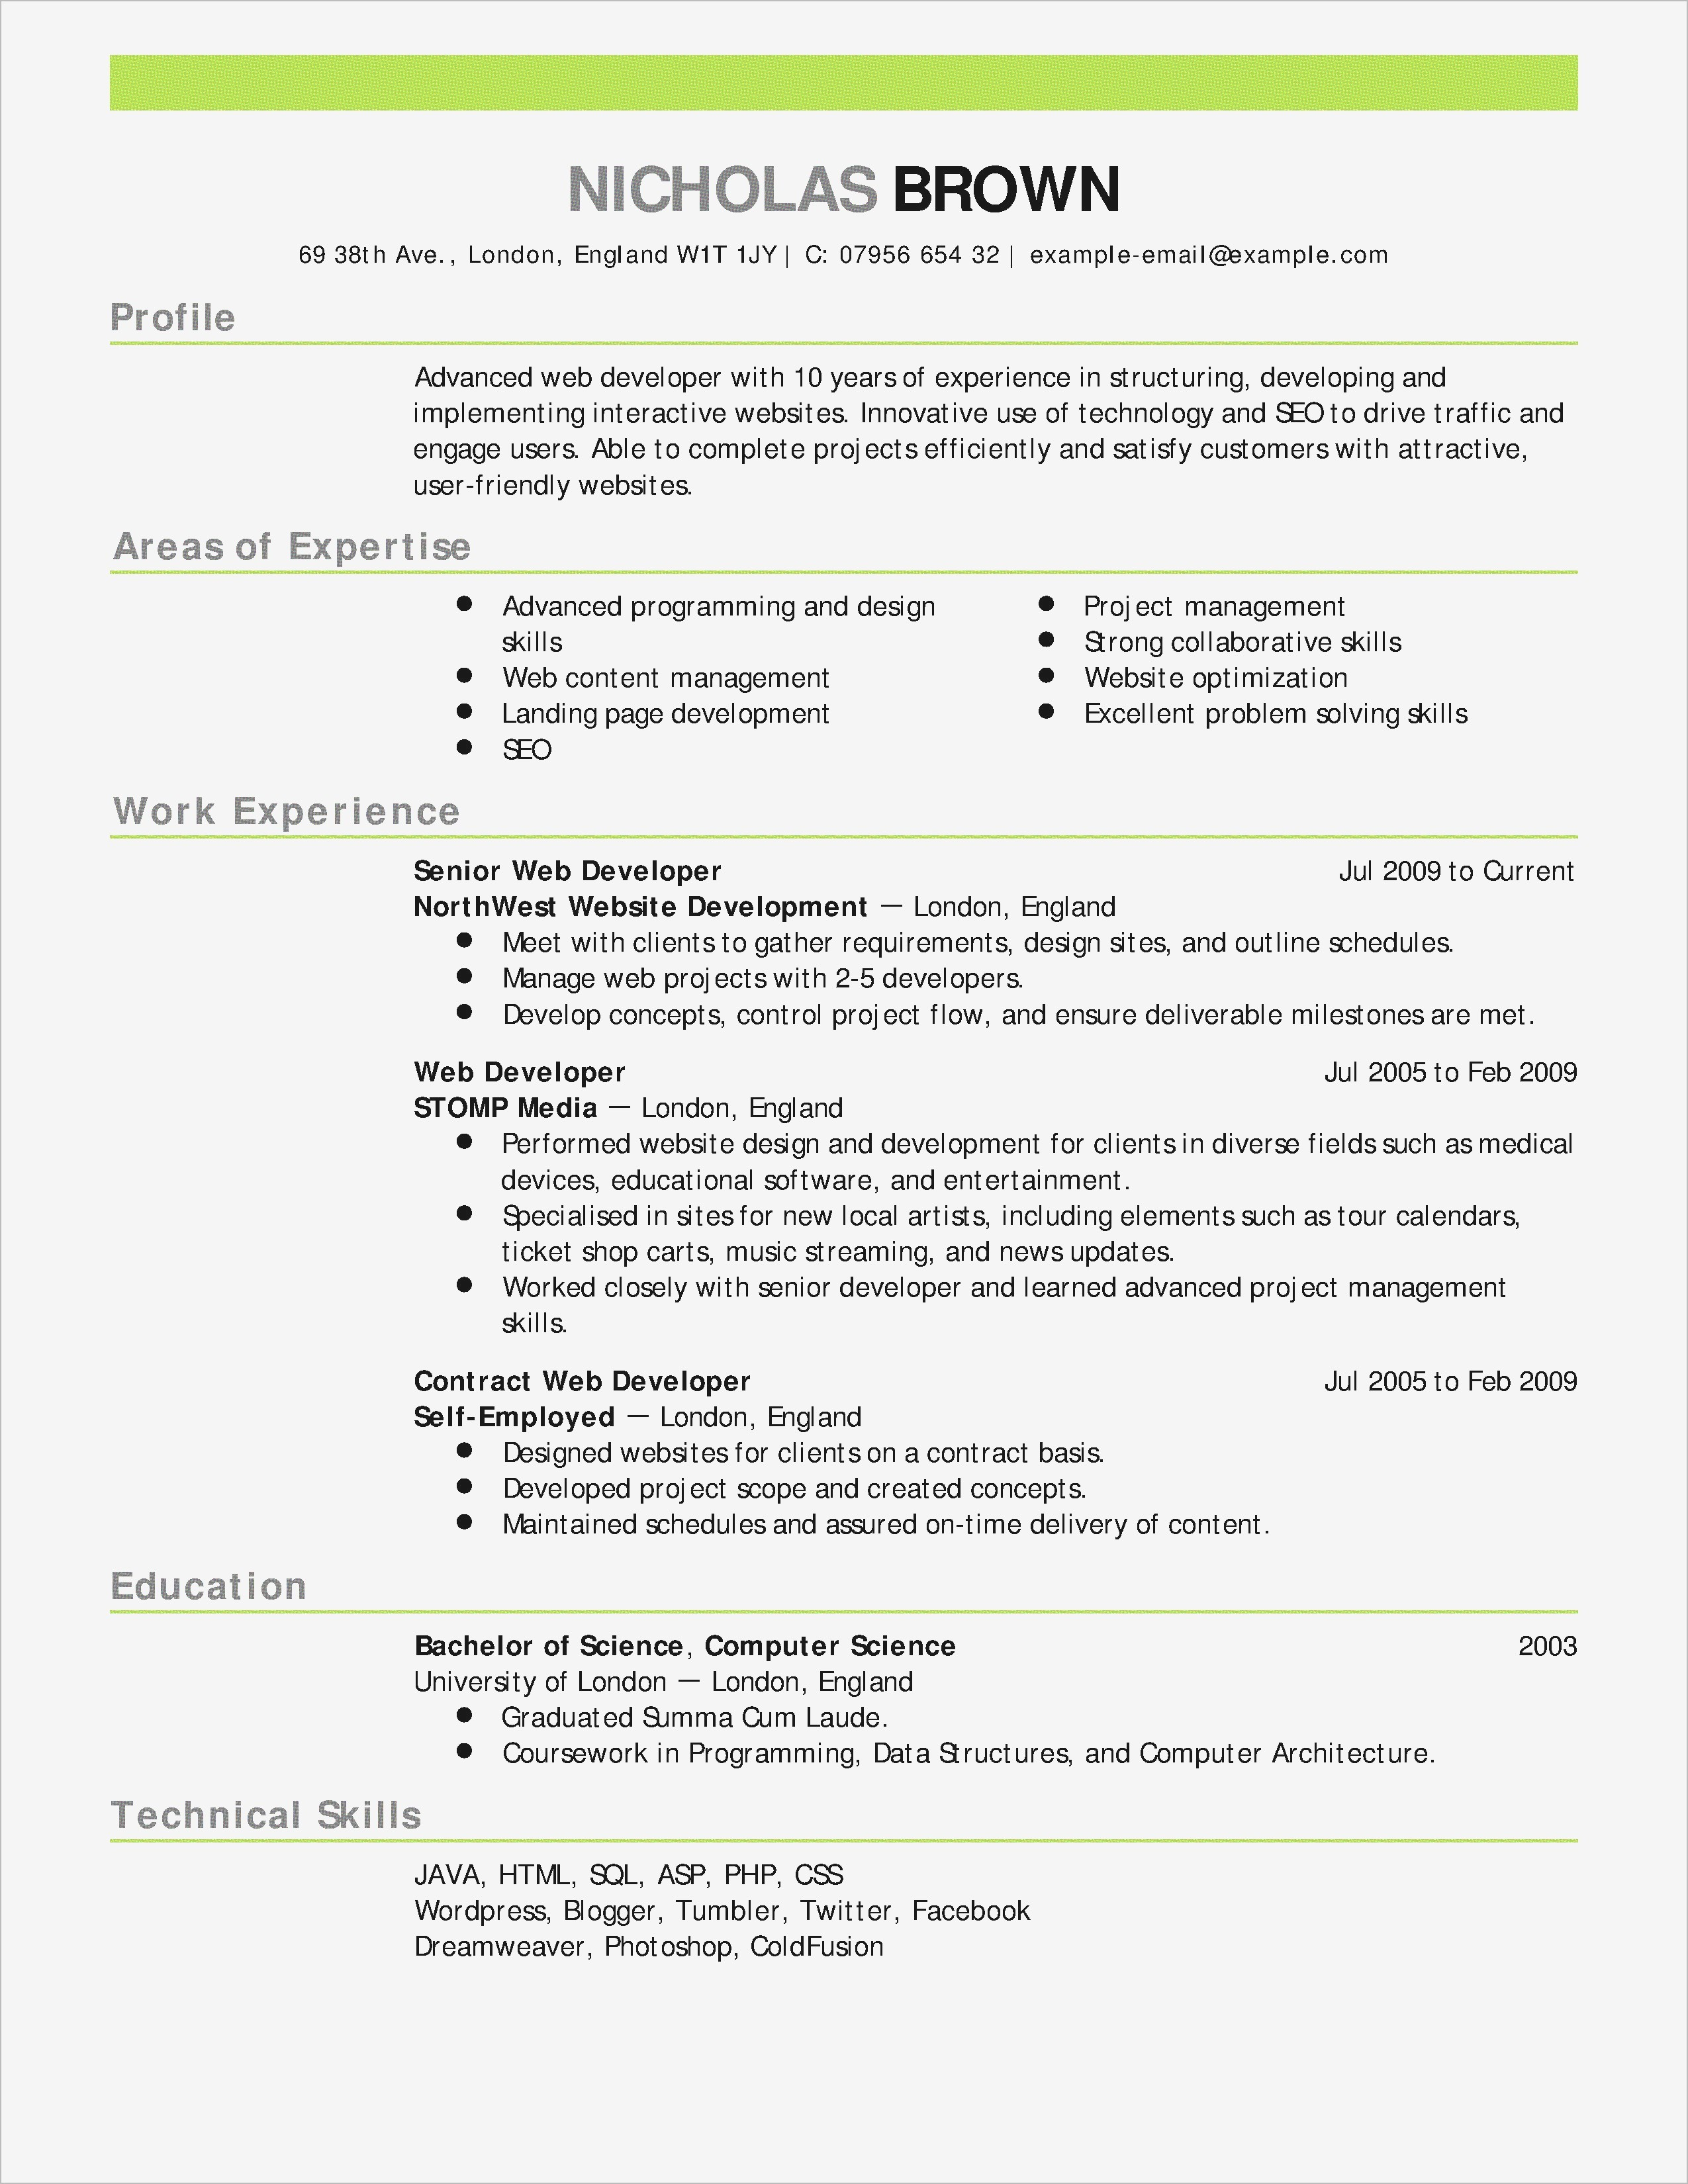 Wholesale Letter Template - Fox School Business Resume Template